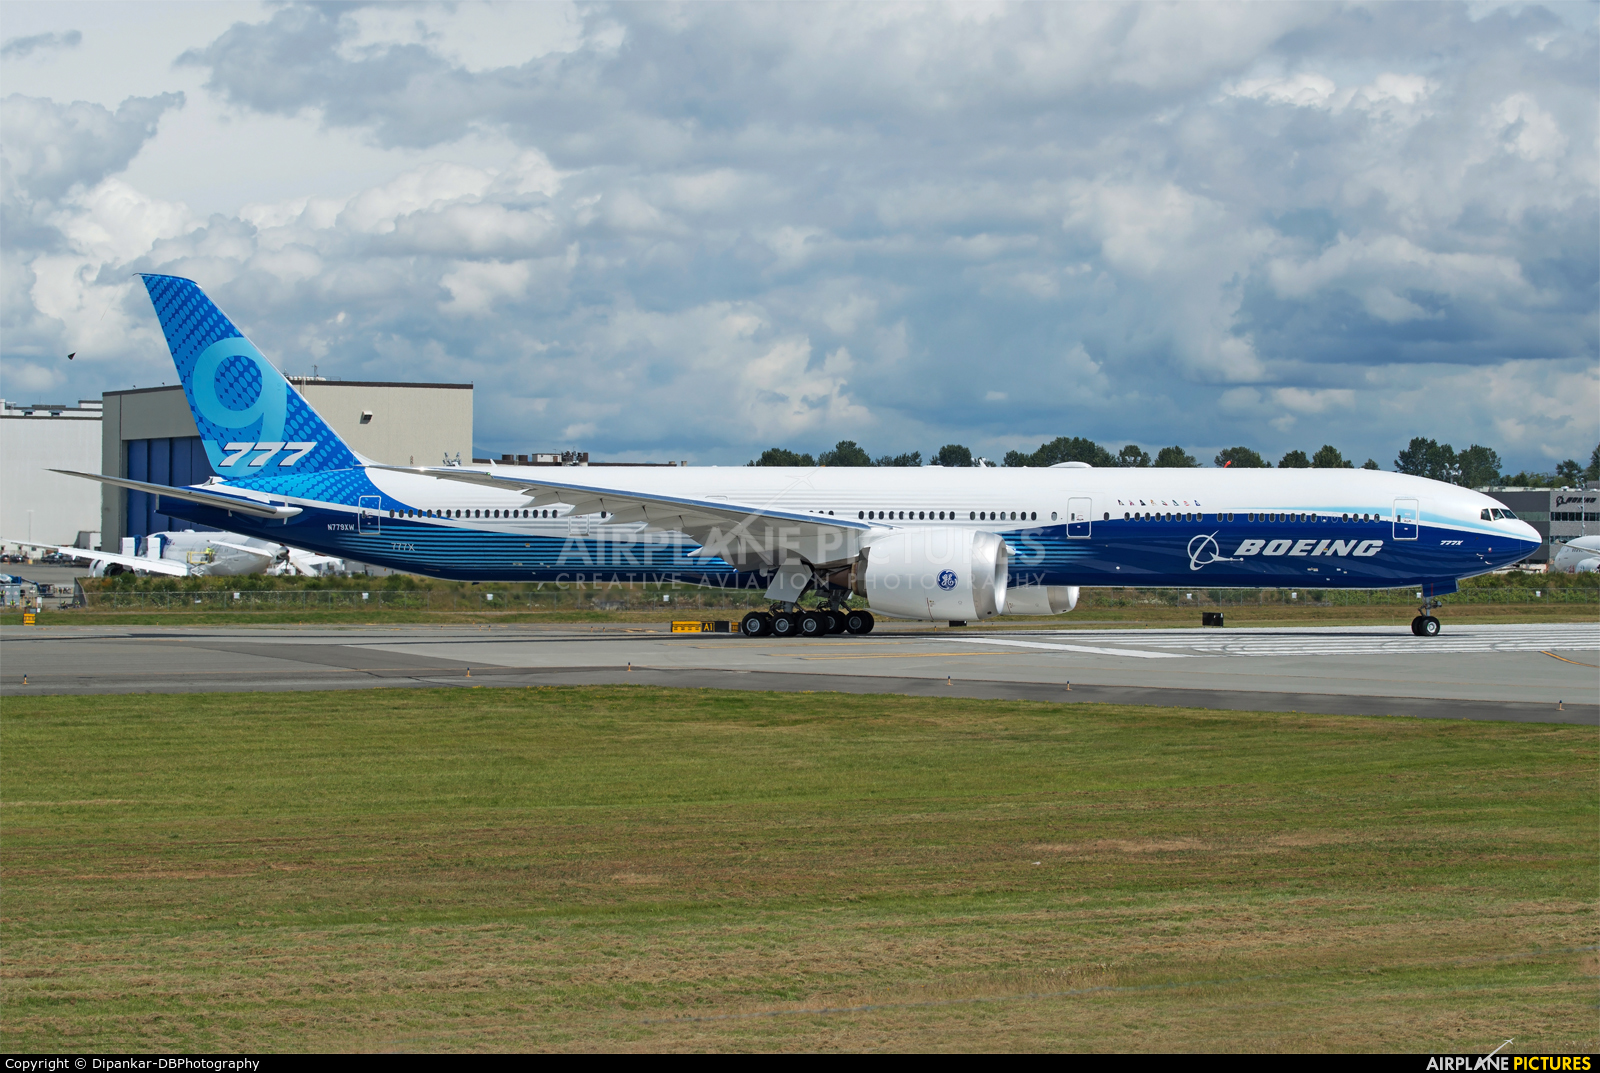 Boeing Company N779XW aircraft at Everett - Snohomish County / Paine Field